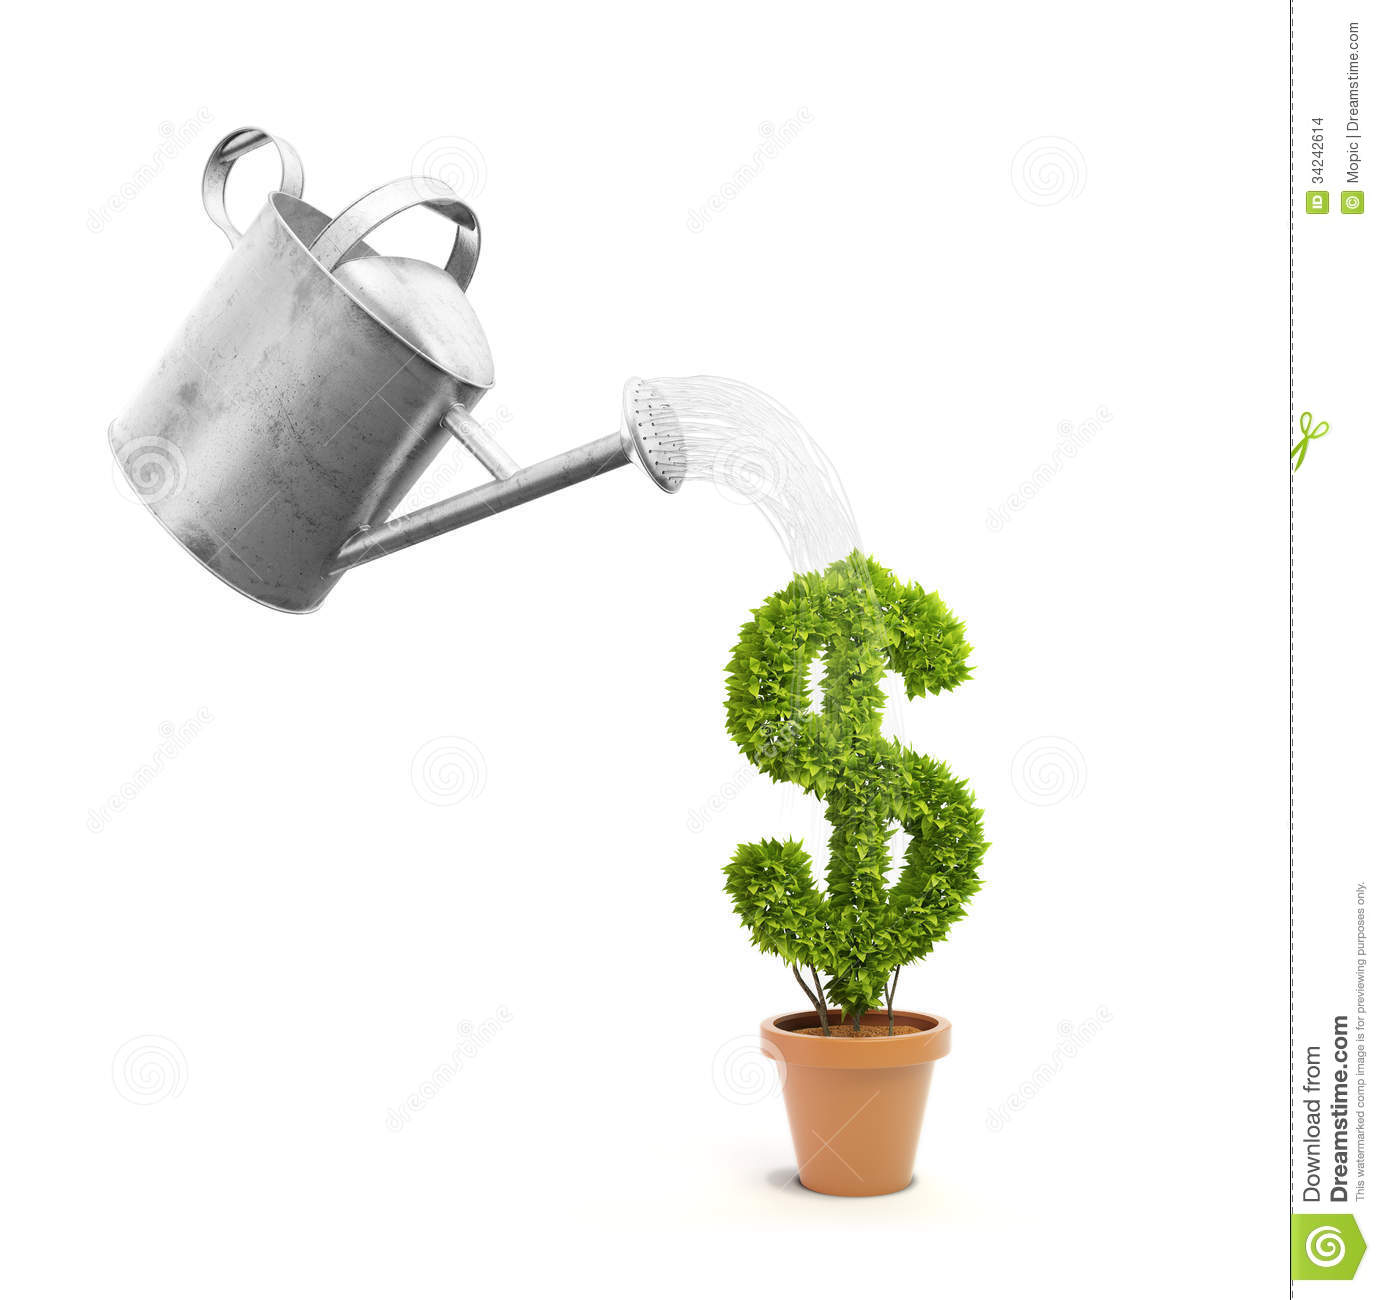 Grote Gieter A Pot Plant Shaped Like A Dollar Sign Stock Illustration